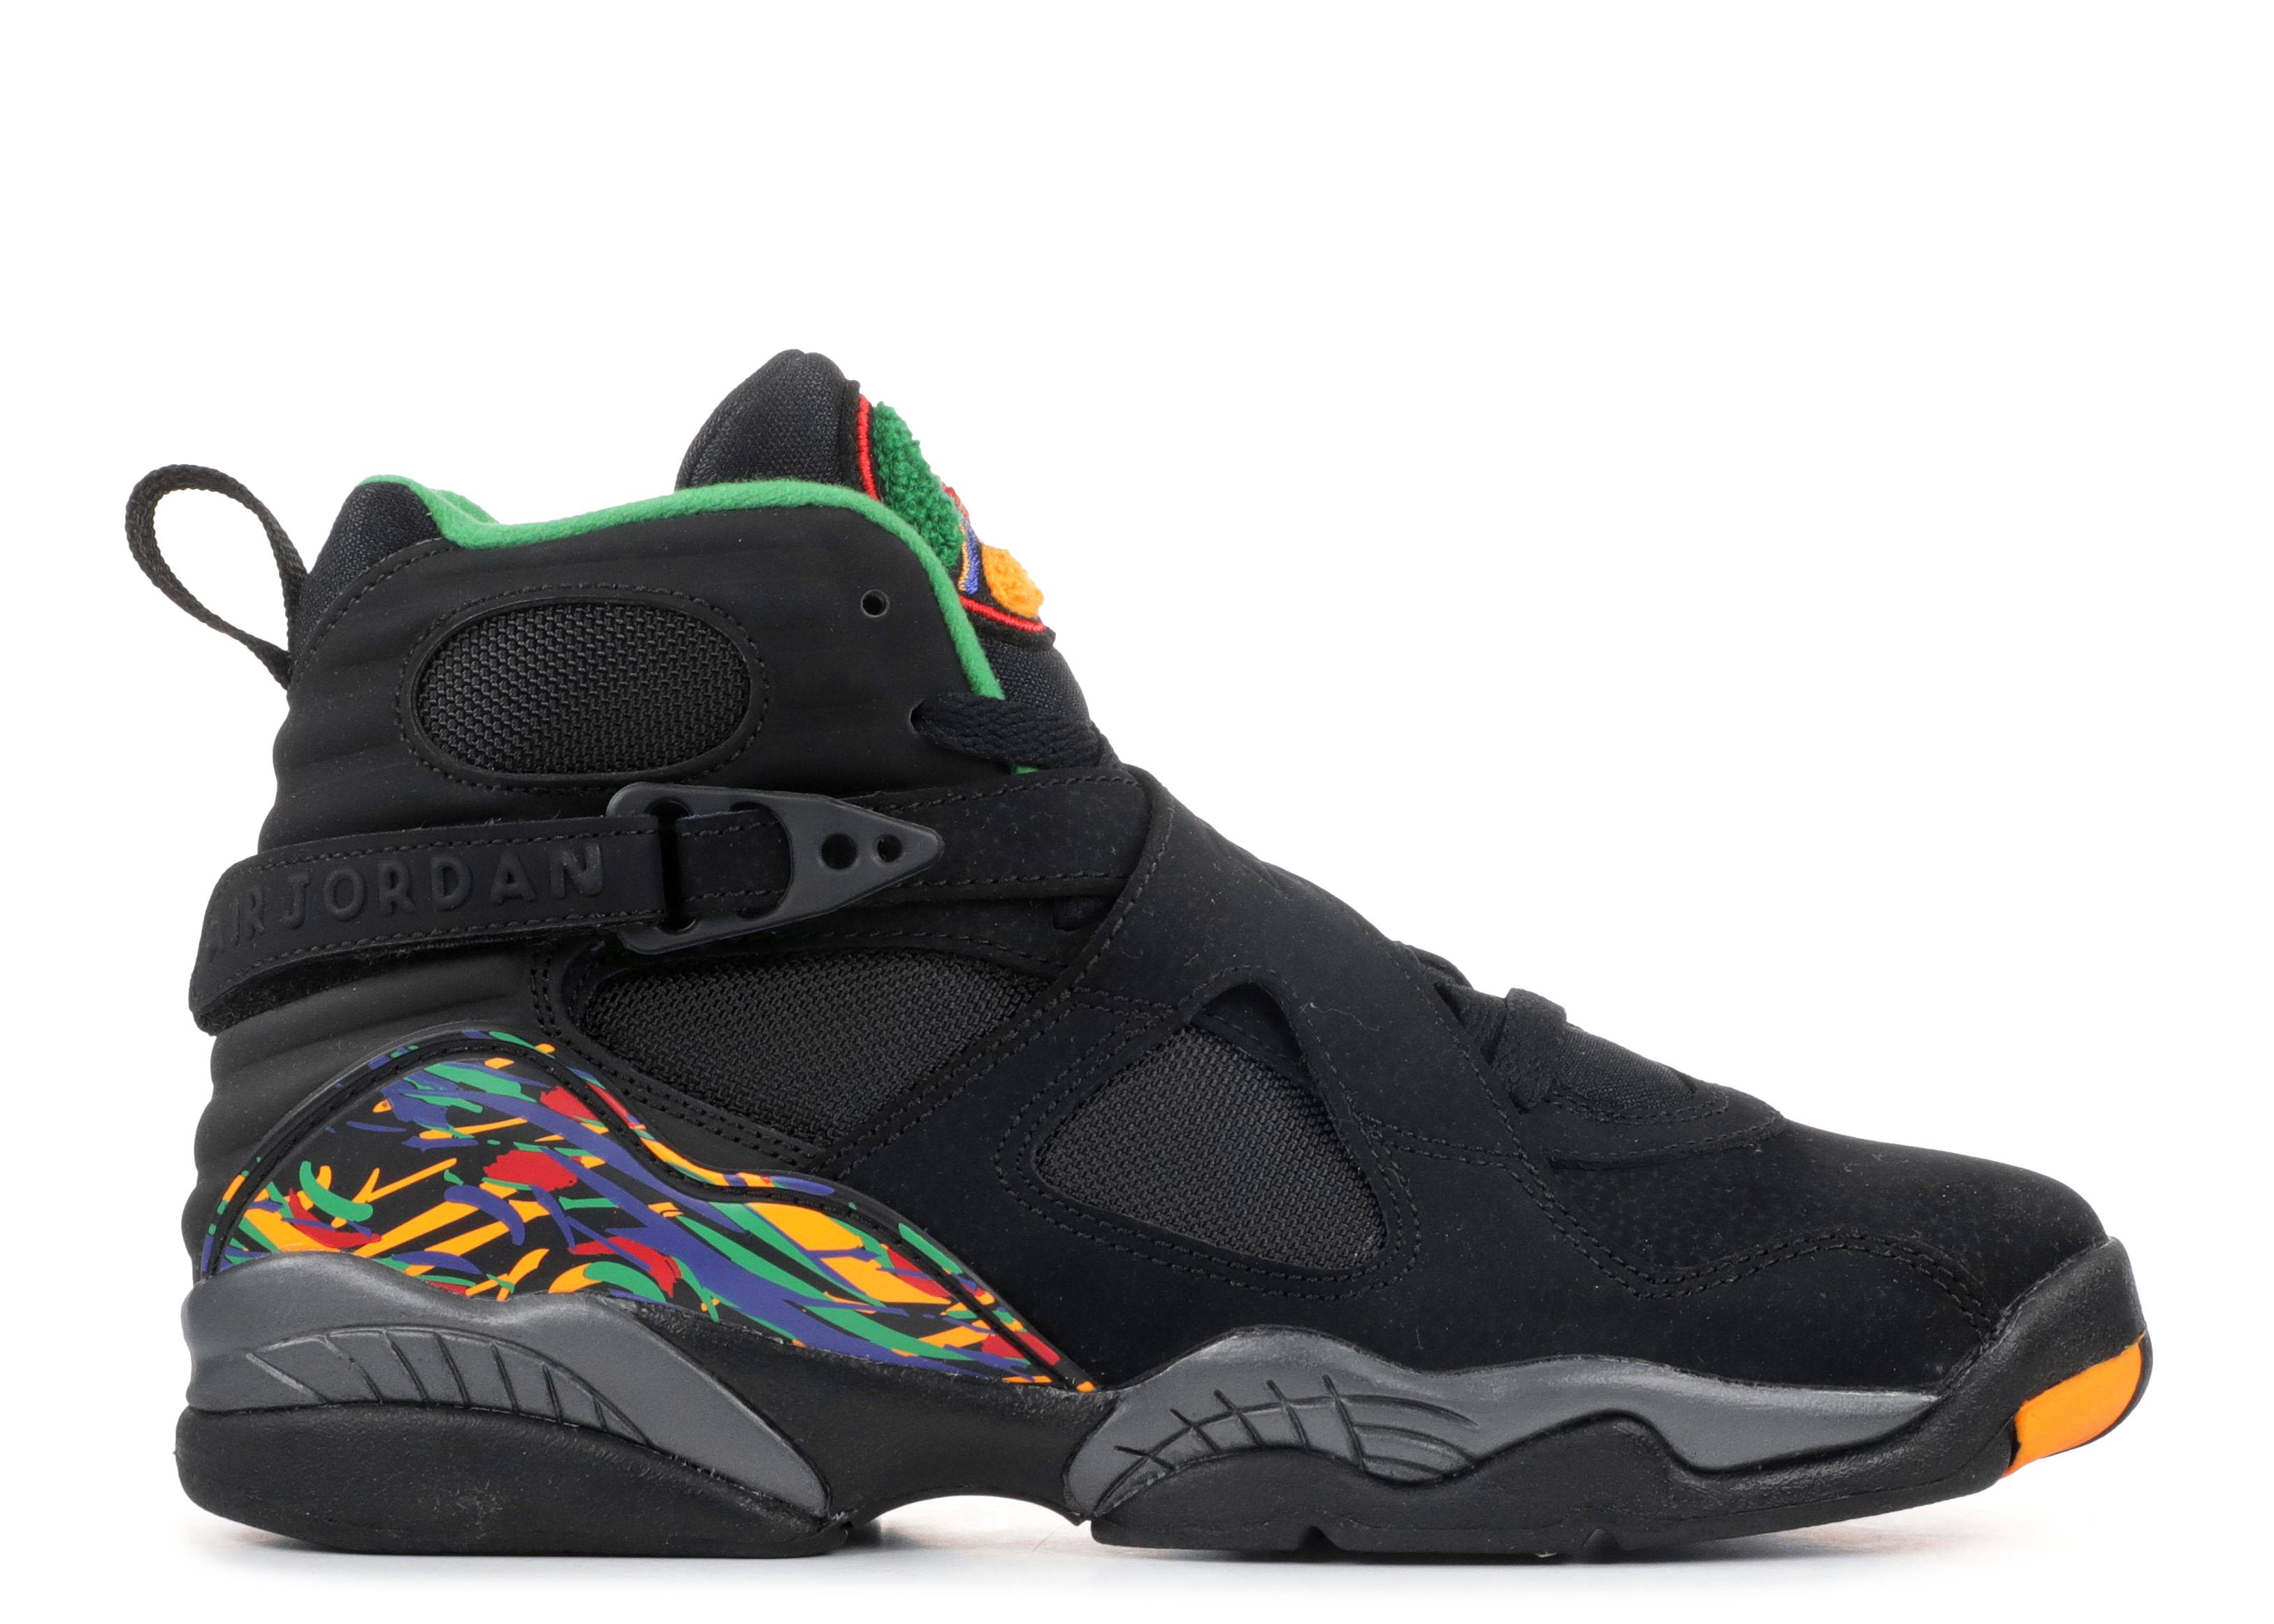 06924fa12d90 Air Jordan 8 (VIII) Shoes - Nike